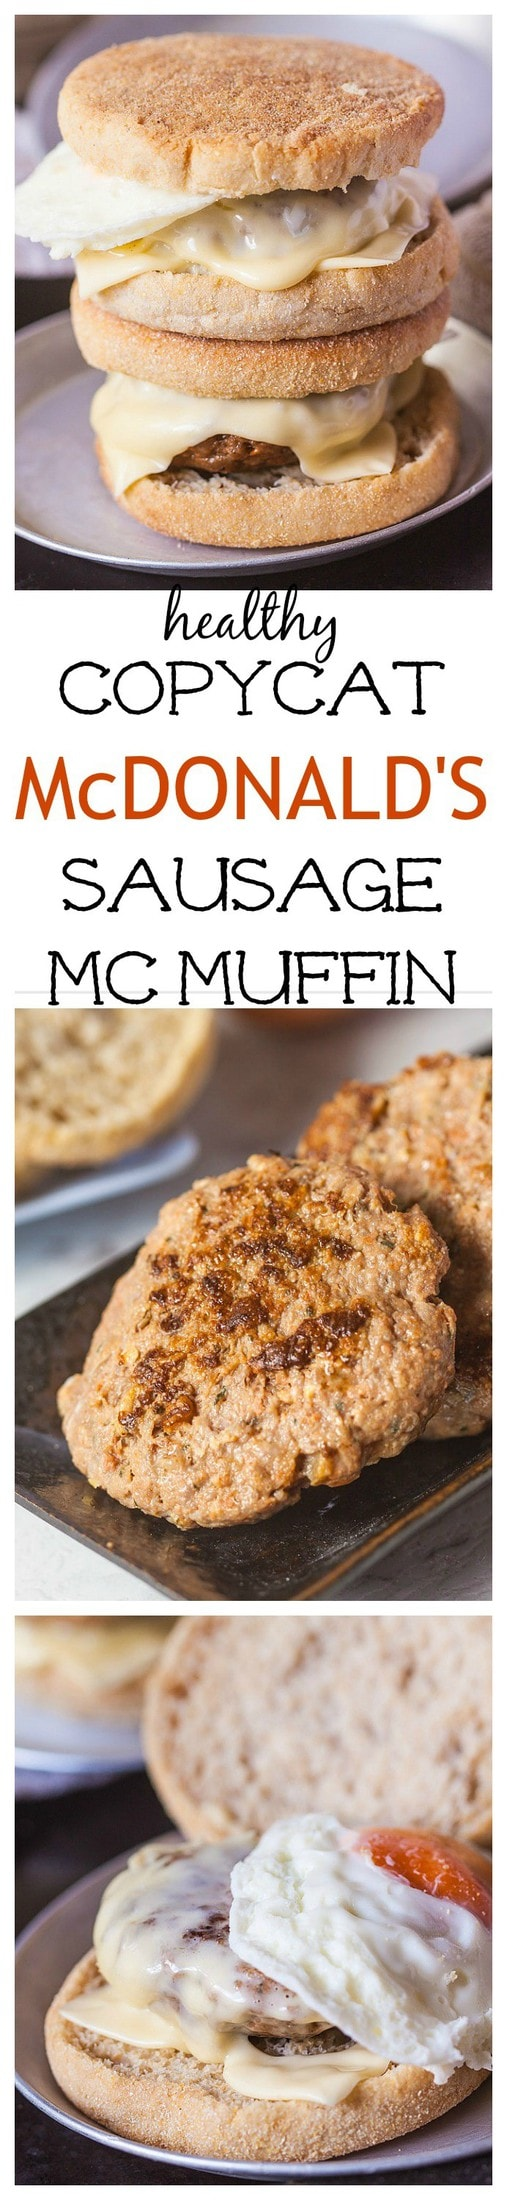 Copycat McDonalds Sausage McMuffin- A healthier take on McDonalds Sausage McMuffin, this version is paleo, whole30 friendly, gluten free, sugar free and are lower in fat than the original without sacrificing on taste or flavour! Theytake less than 10 minutes to whip up and are perfect for food prep for easy grab and go breakfasts for the week- Bonus- You can even use my Paleo English Muffin recipe too! @thebigmansworld - thebigmansworld.com